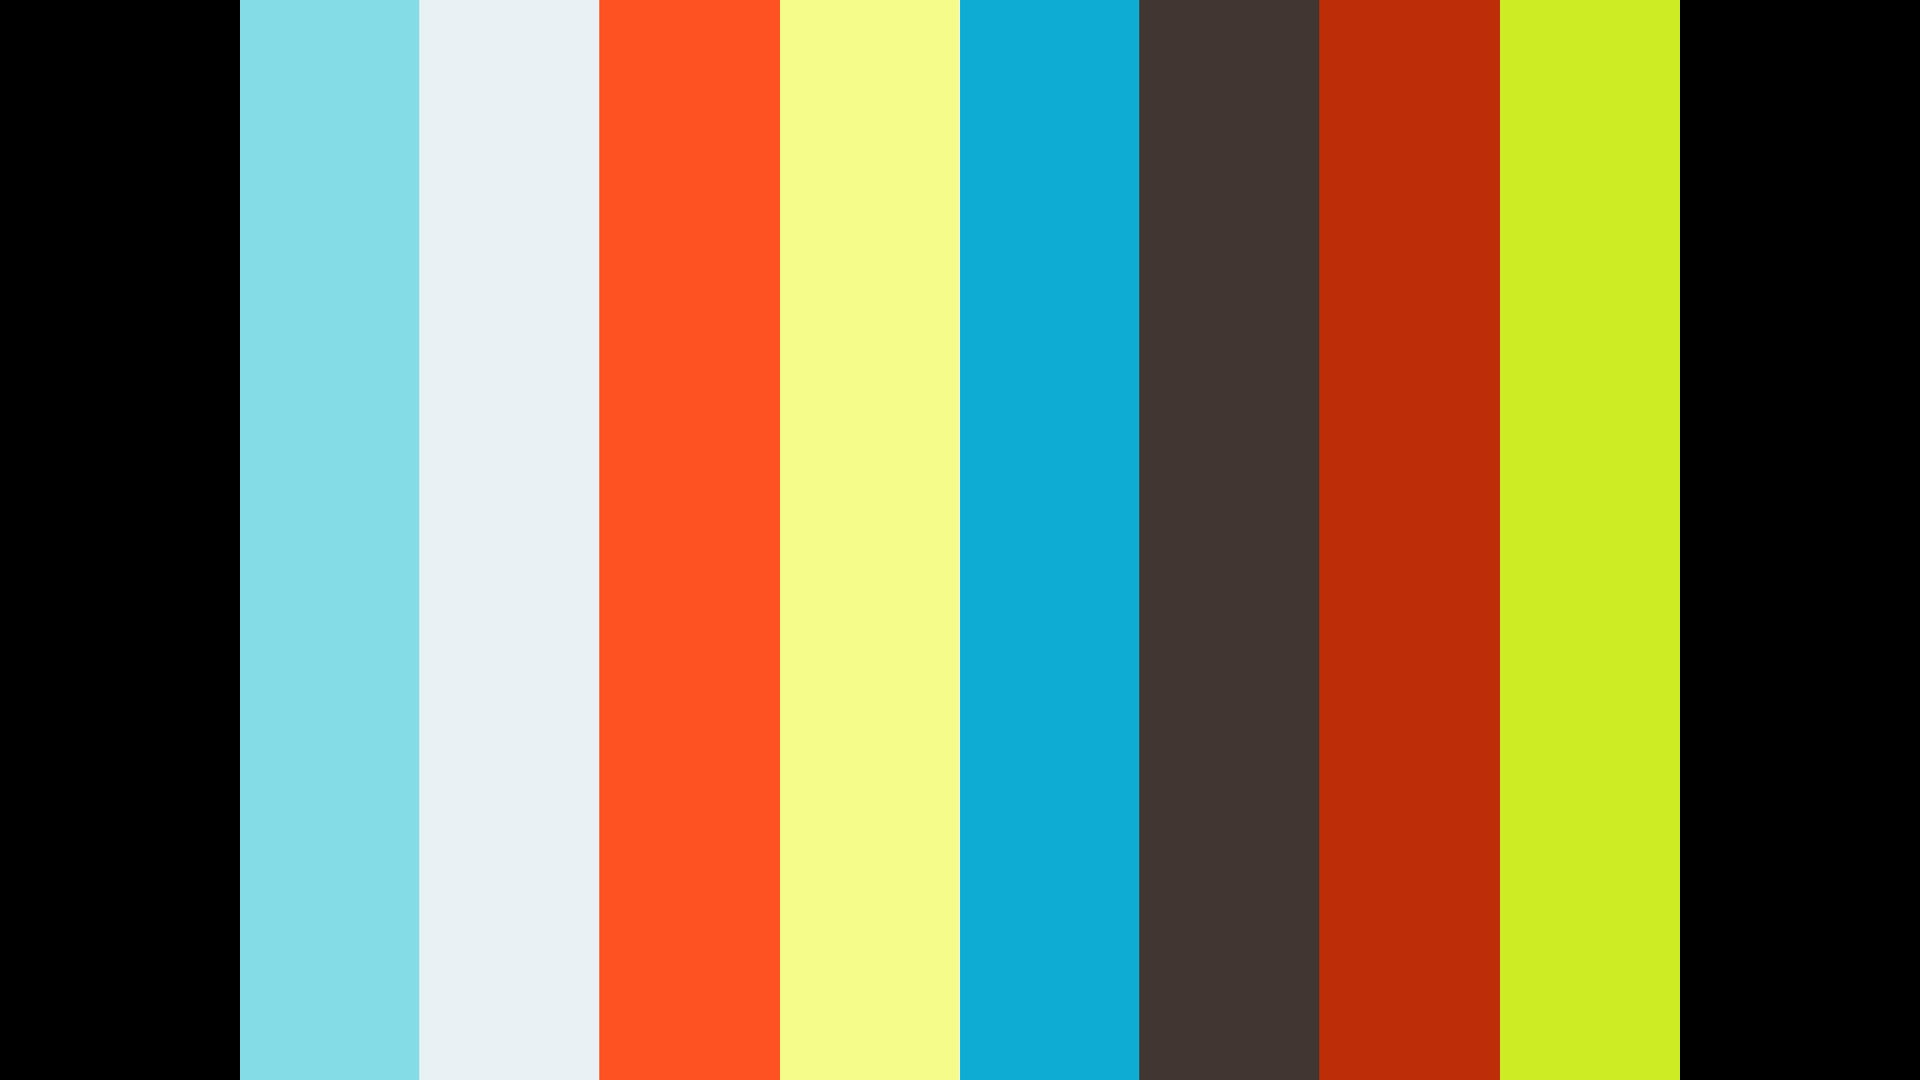 Digital Now